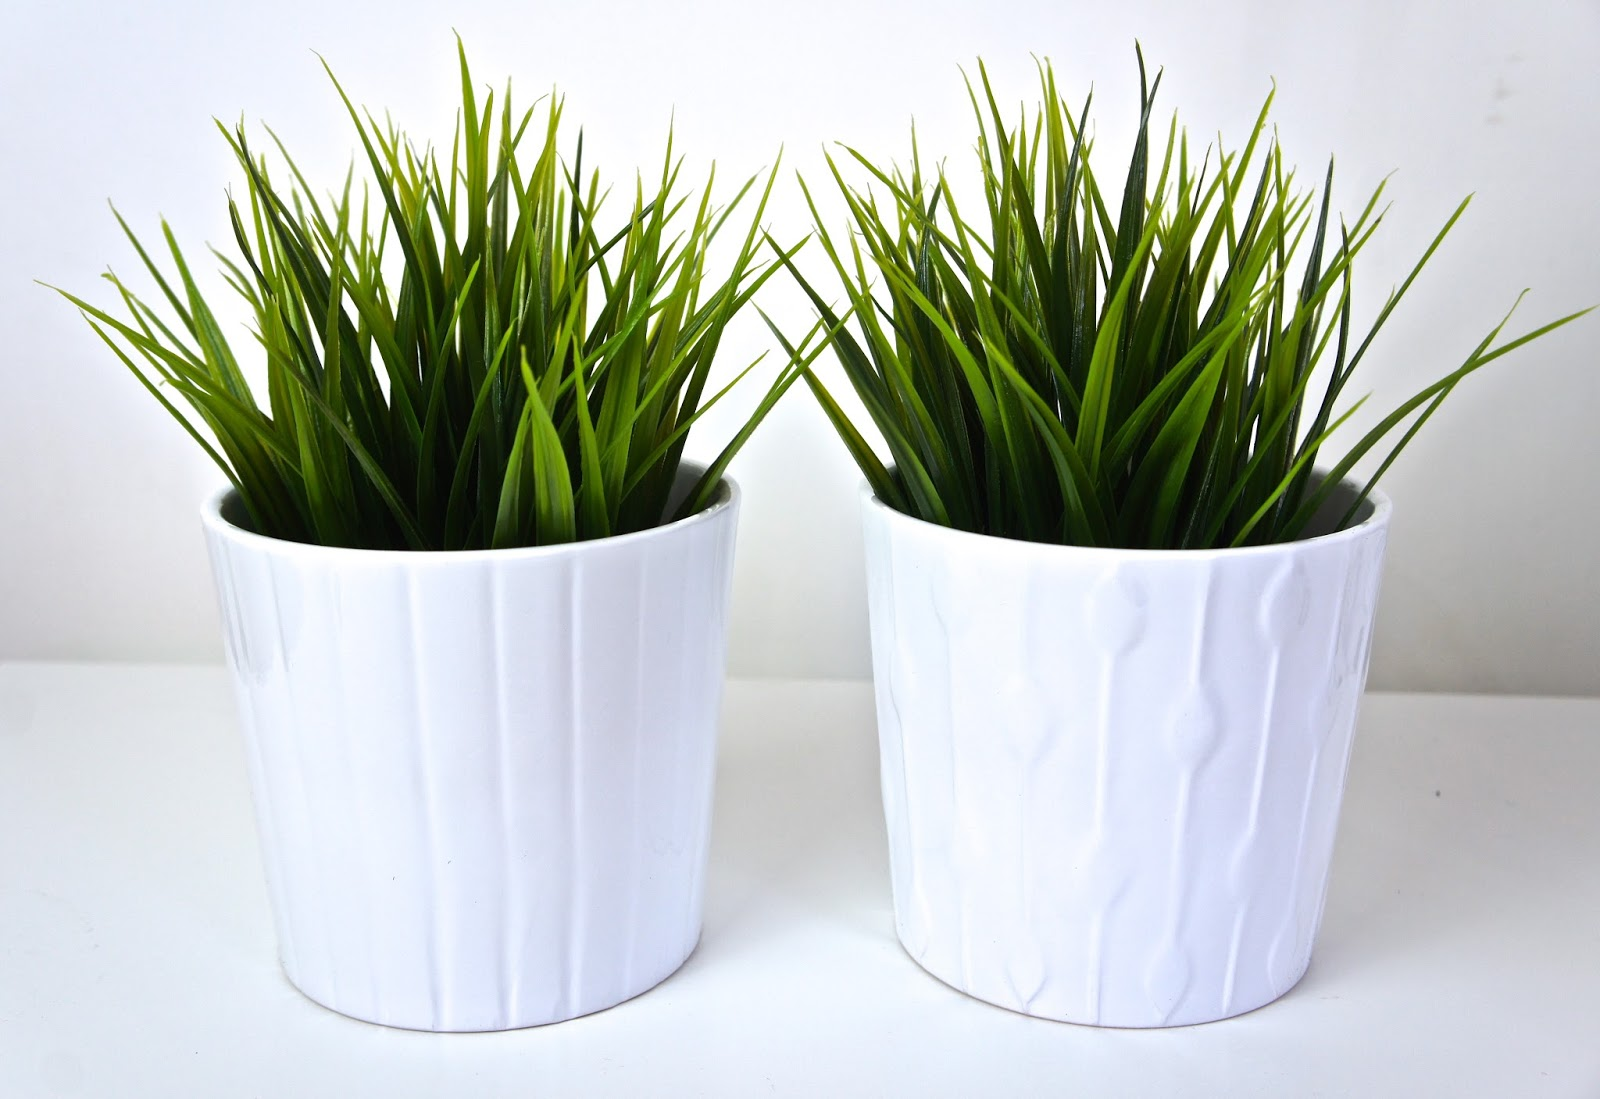 Plant Bamboo Vase Lifestyle Homeware Greenery Home